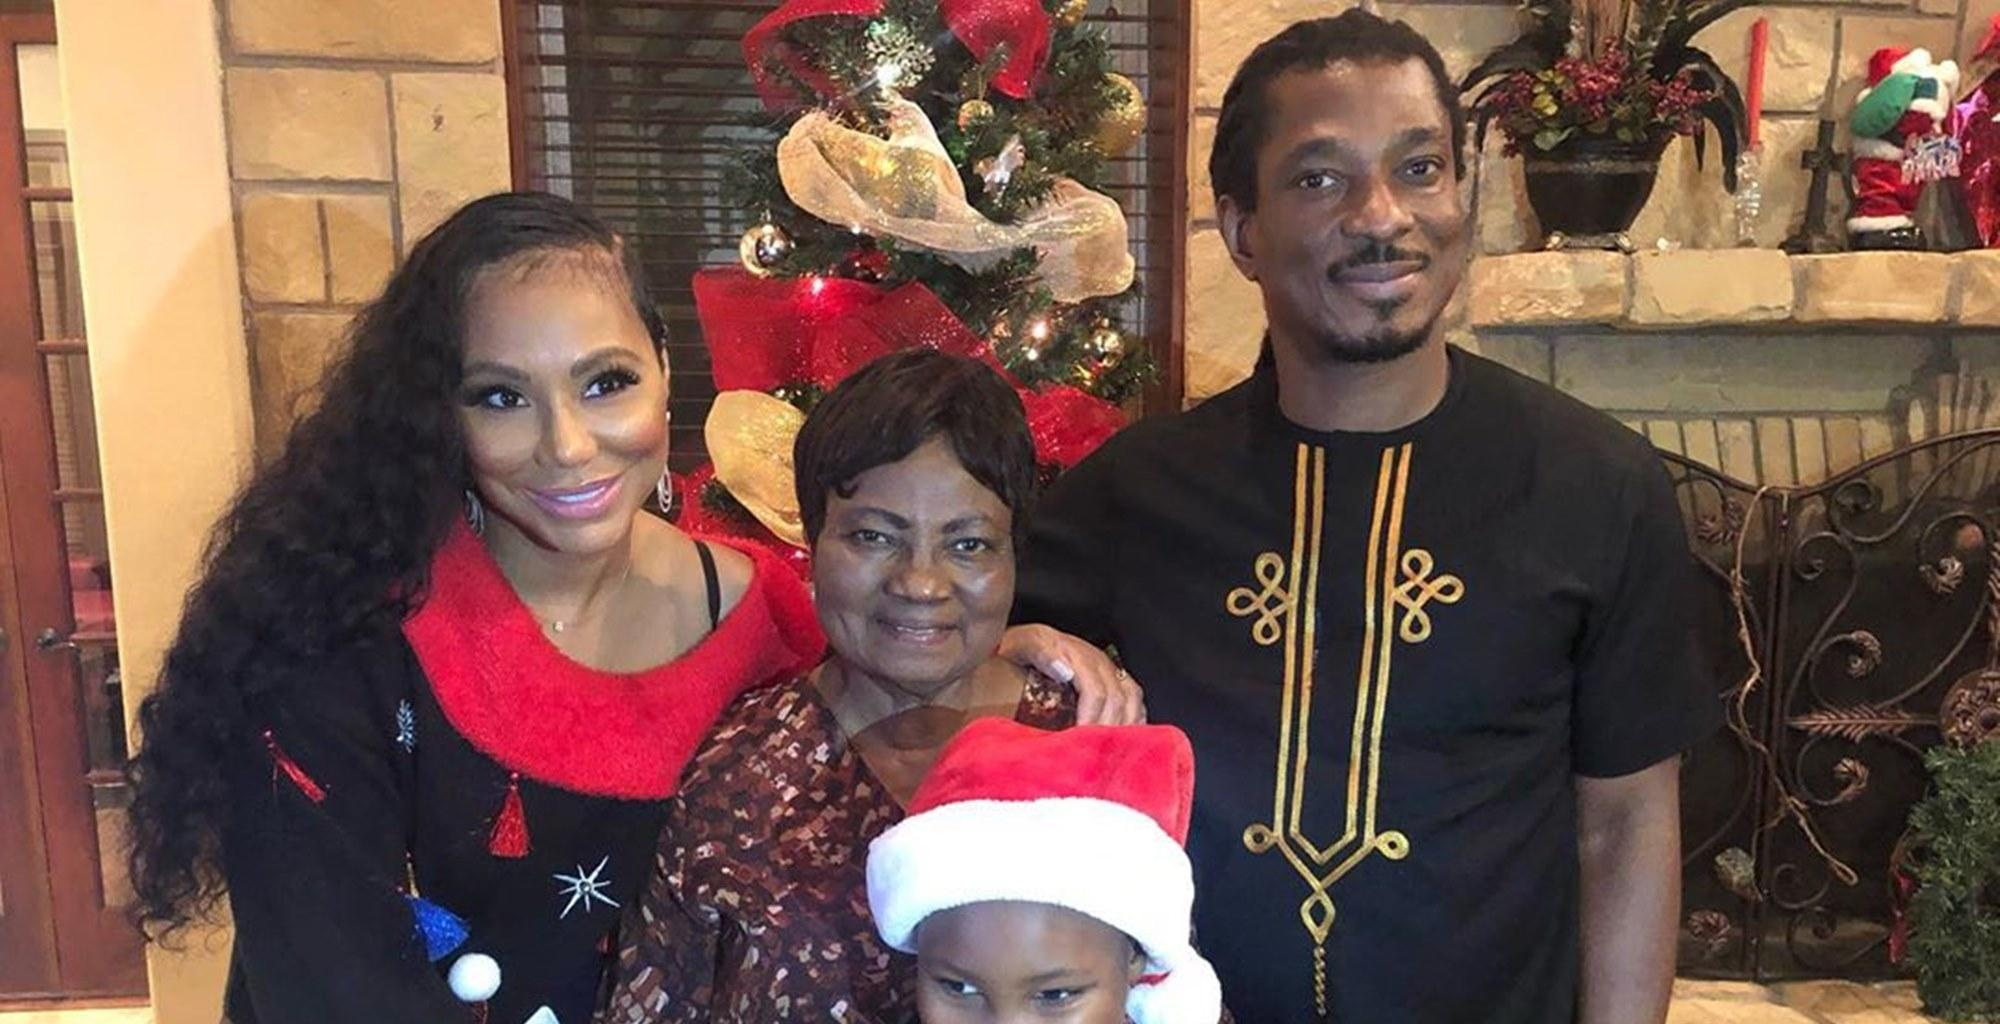 Tamar Braxton Melts Hearts With Video Of Her Son, Logan Herbert, Bonding With BF David Adefeso While Celebrating Christmas With His 80-Year-Old Mother